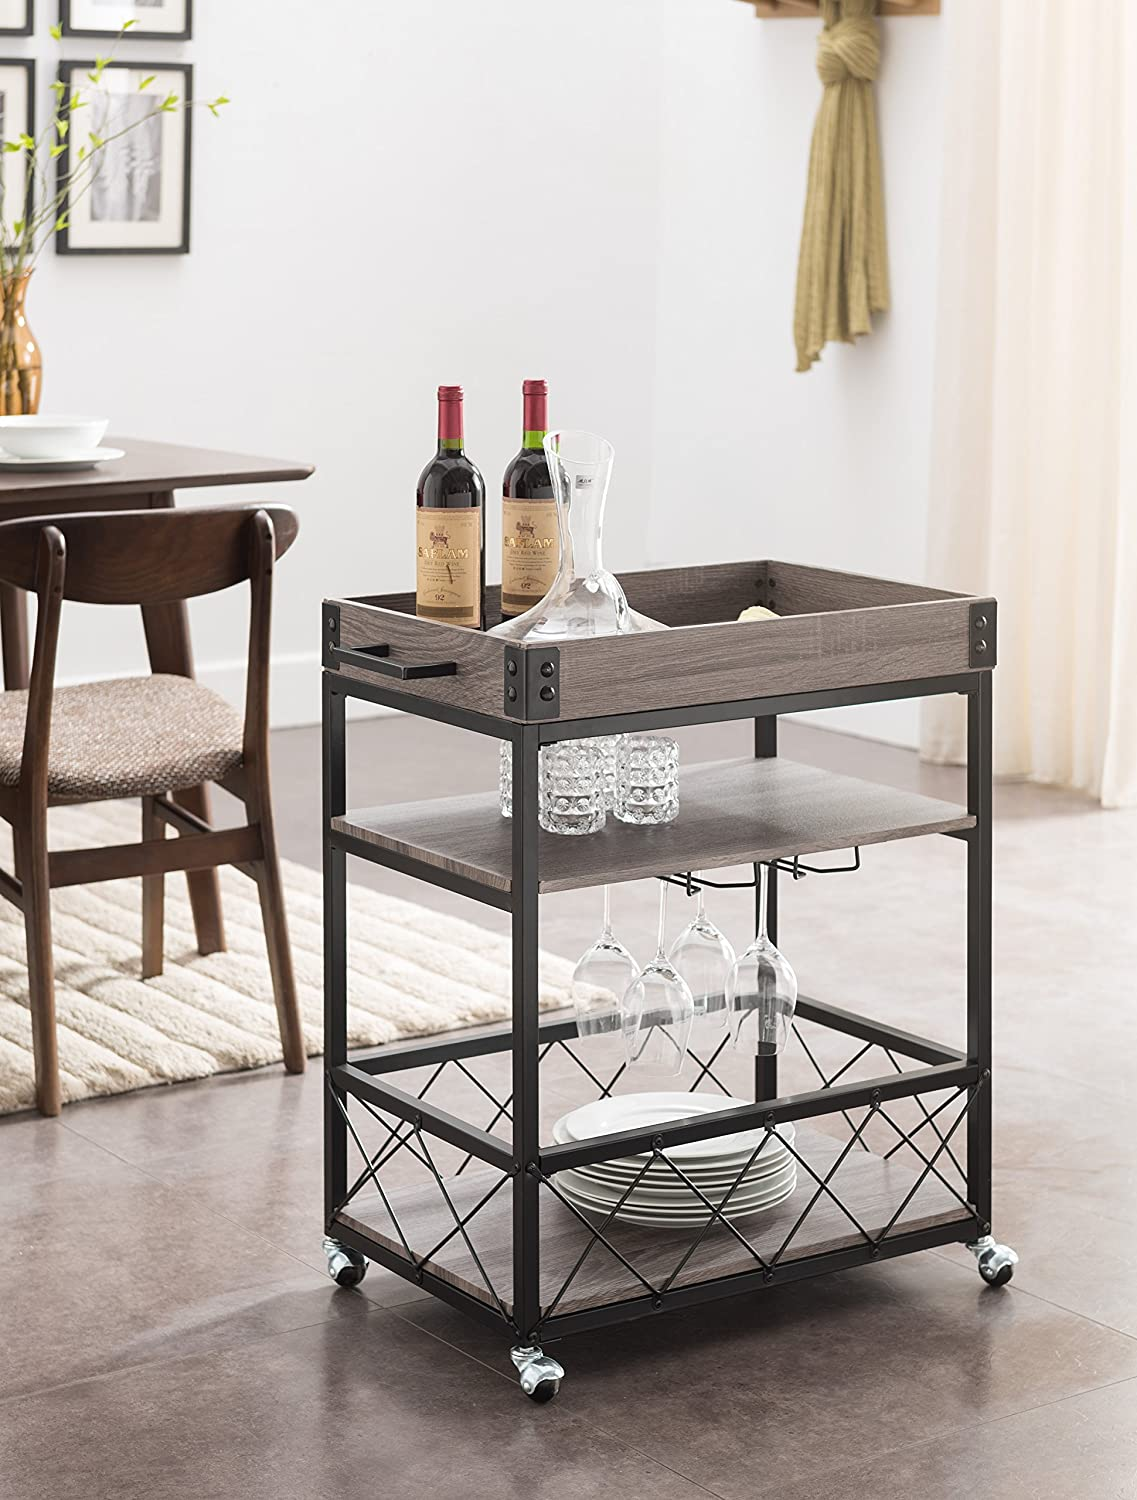 Wine Bottle Rack Serving Rolling Cart Chrome Bar Counter Cup Stand ...